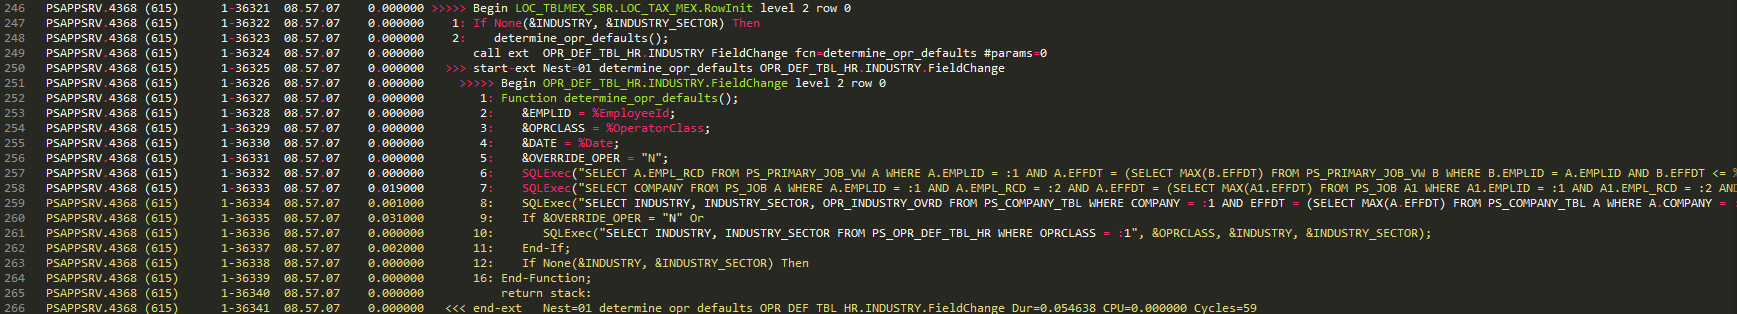 Messed up syntax highlighting